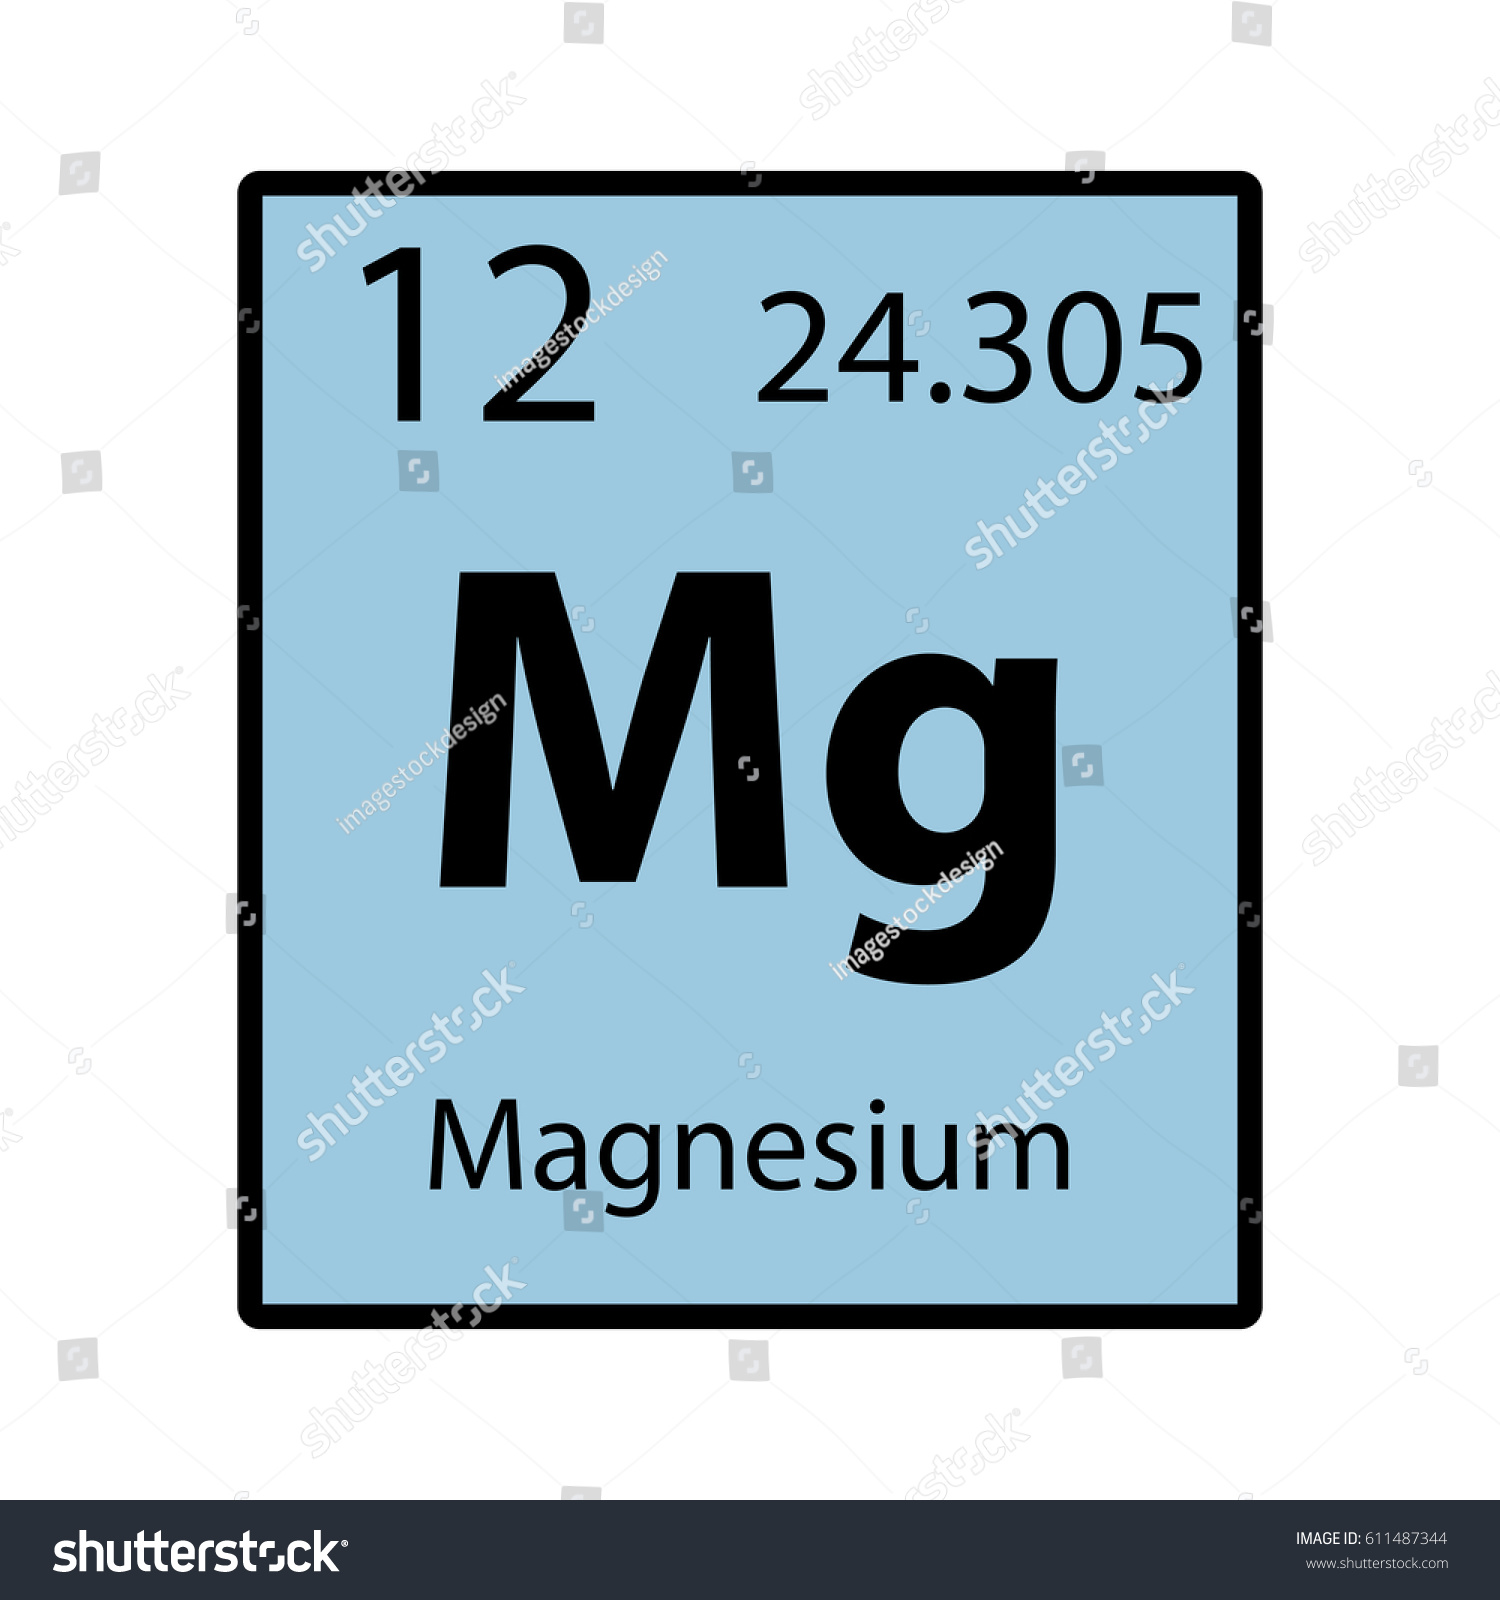 Magnesium periodic table element color icon stock vector 611487344 magnesium periodic table element color icon on white background vector gamestrikefo Gallery